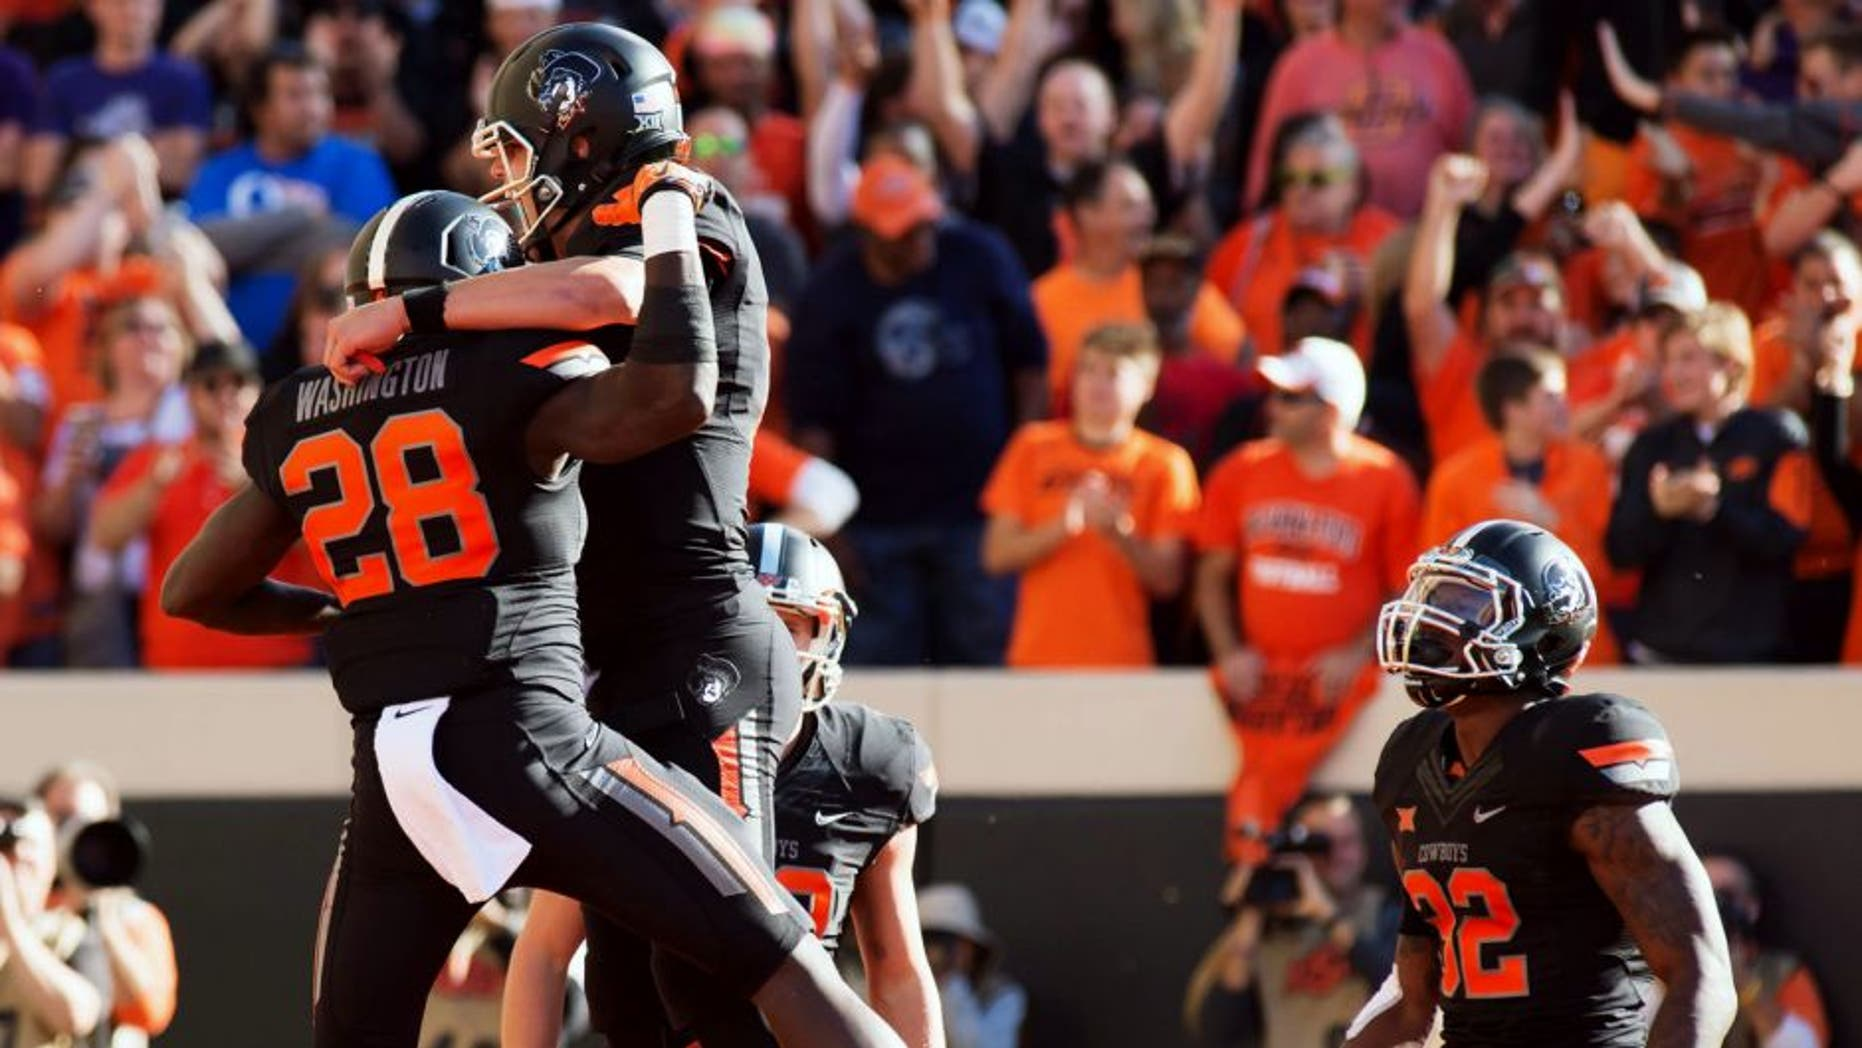 Nov 7, 2015; Stillwater, OK, USA; Oklahoma State Cowboys wide receiver James Washington (28) celebrates a touchdown against the TCU Horned Frogs during the first quarter at Boone Pickens Stadium. Mandatory Credit: Rob Ferguson-USA TODAY Sports